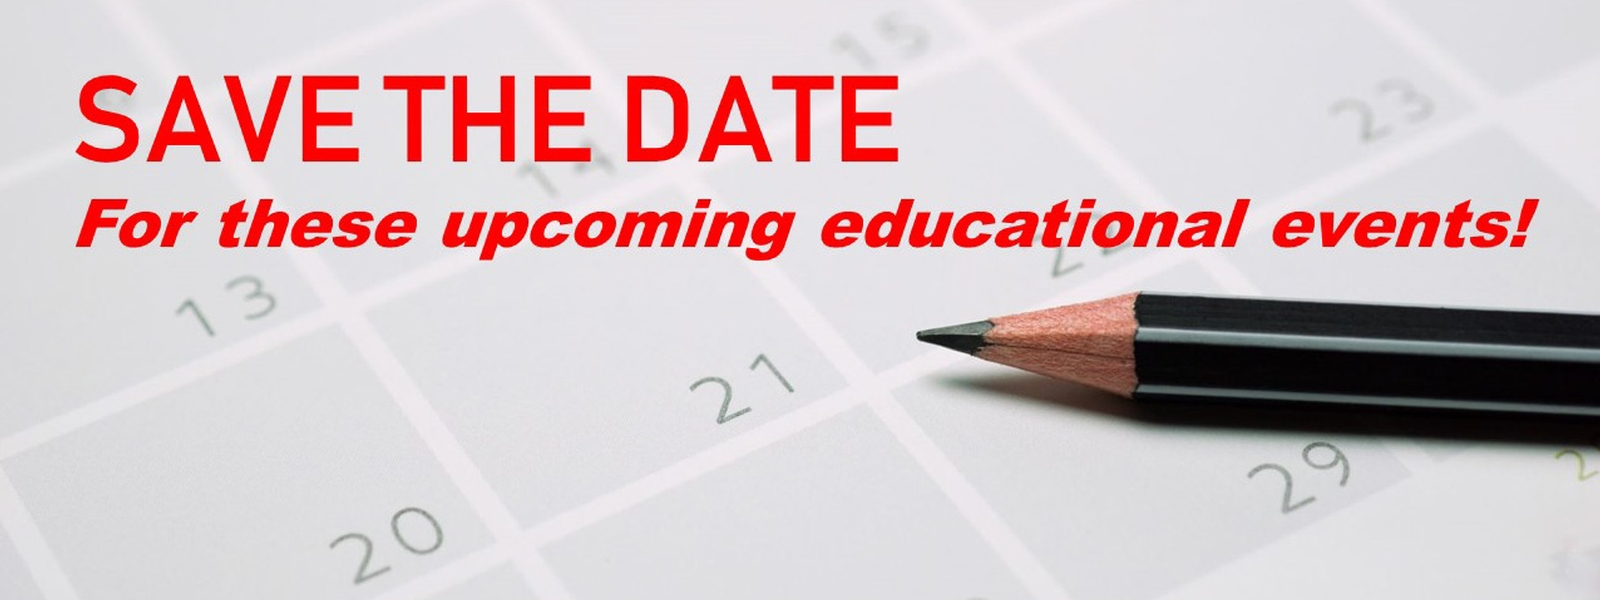 Save the Date Upcoming Educational Events